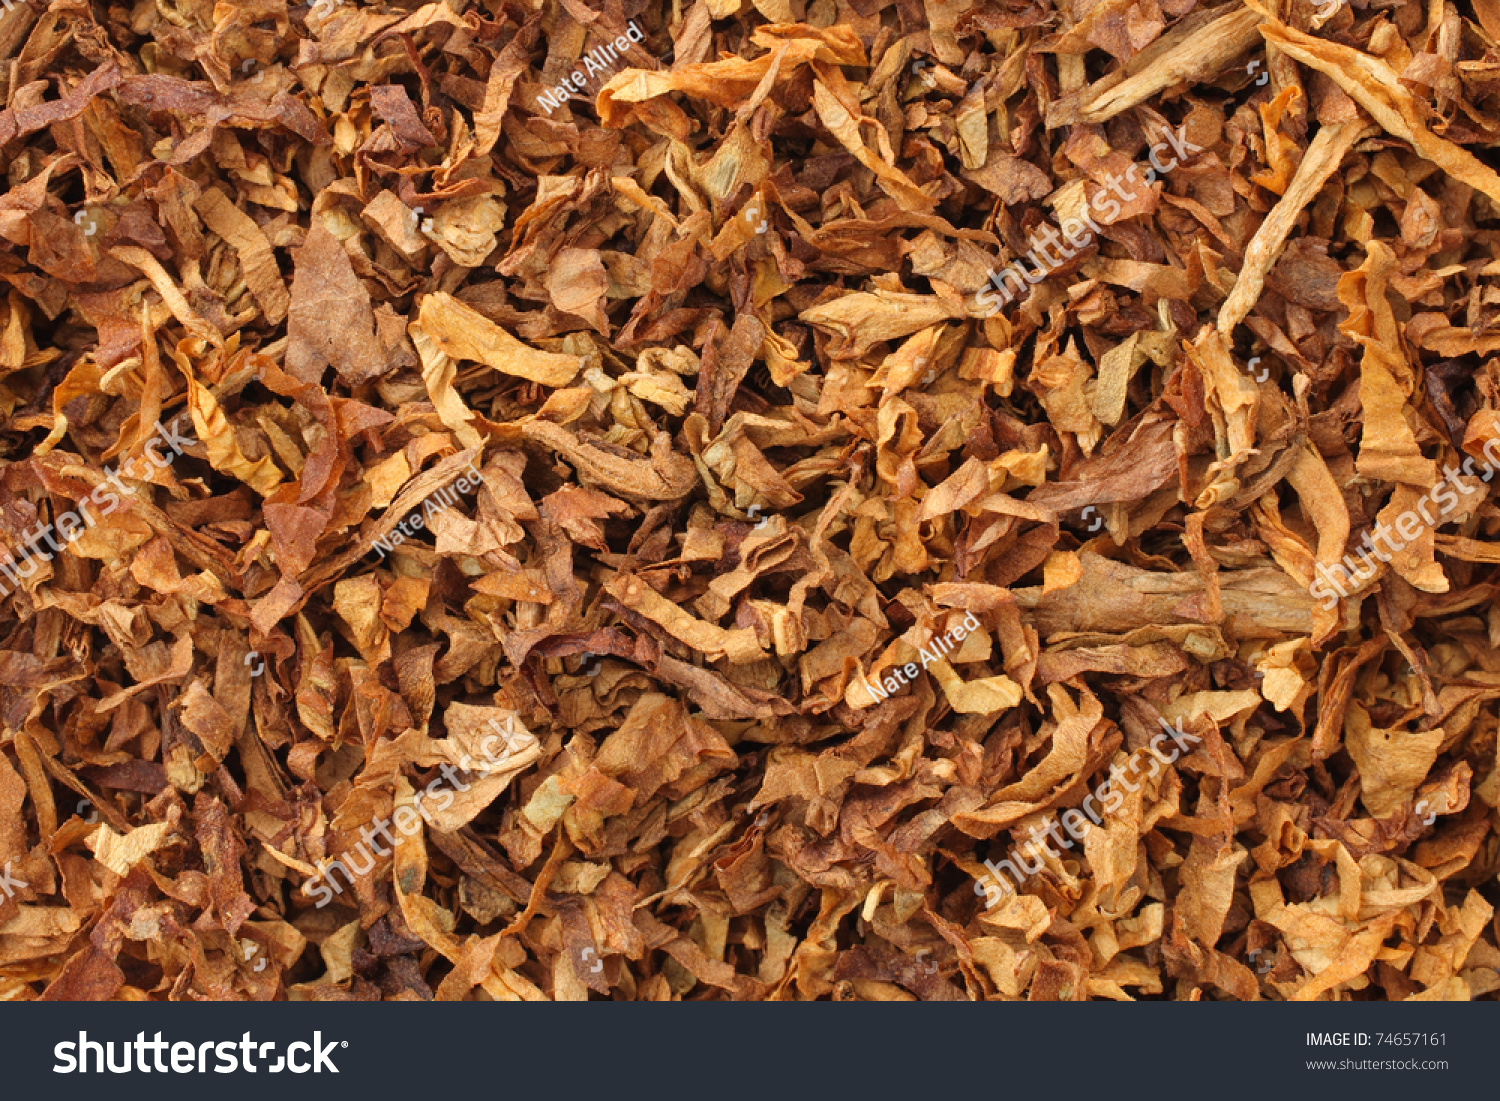 the feasibility of dried tobacco leaves Tobacco is an age old, yet amazing plant, which has become increasingly popular among hobbyist in recent times perhaps it is a distraction from daily stresses and allows an escape to simpler times.